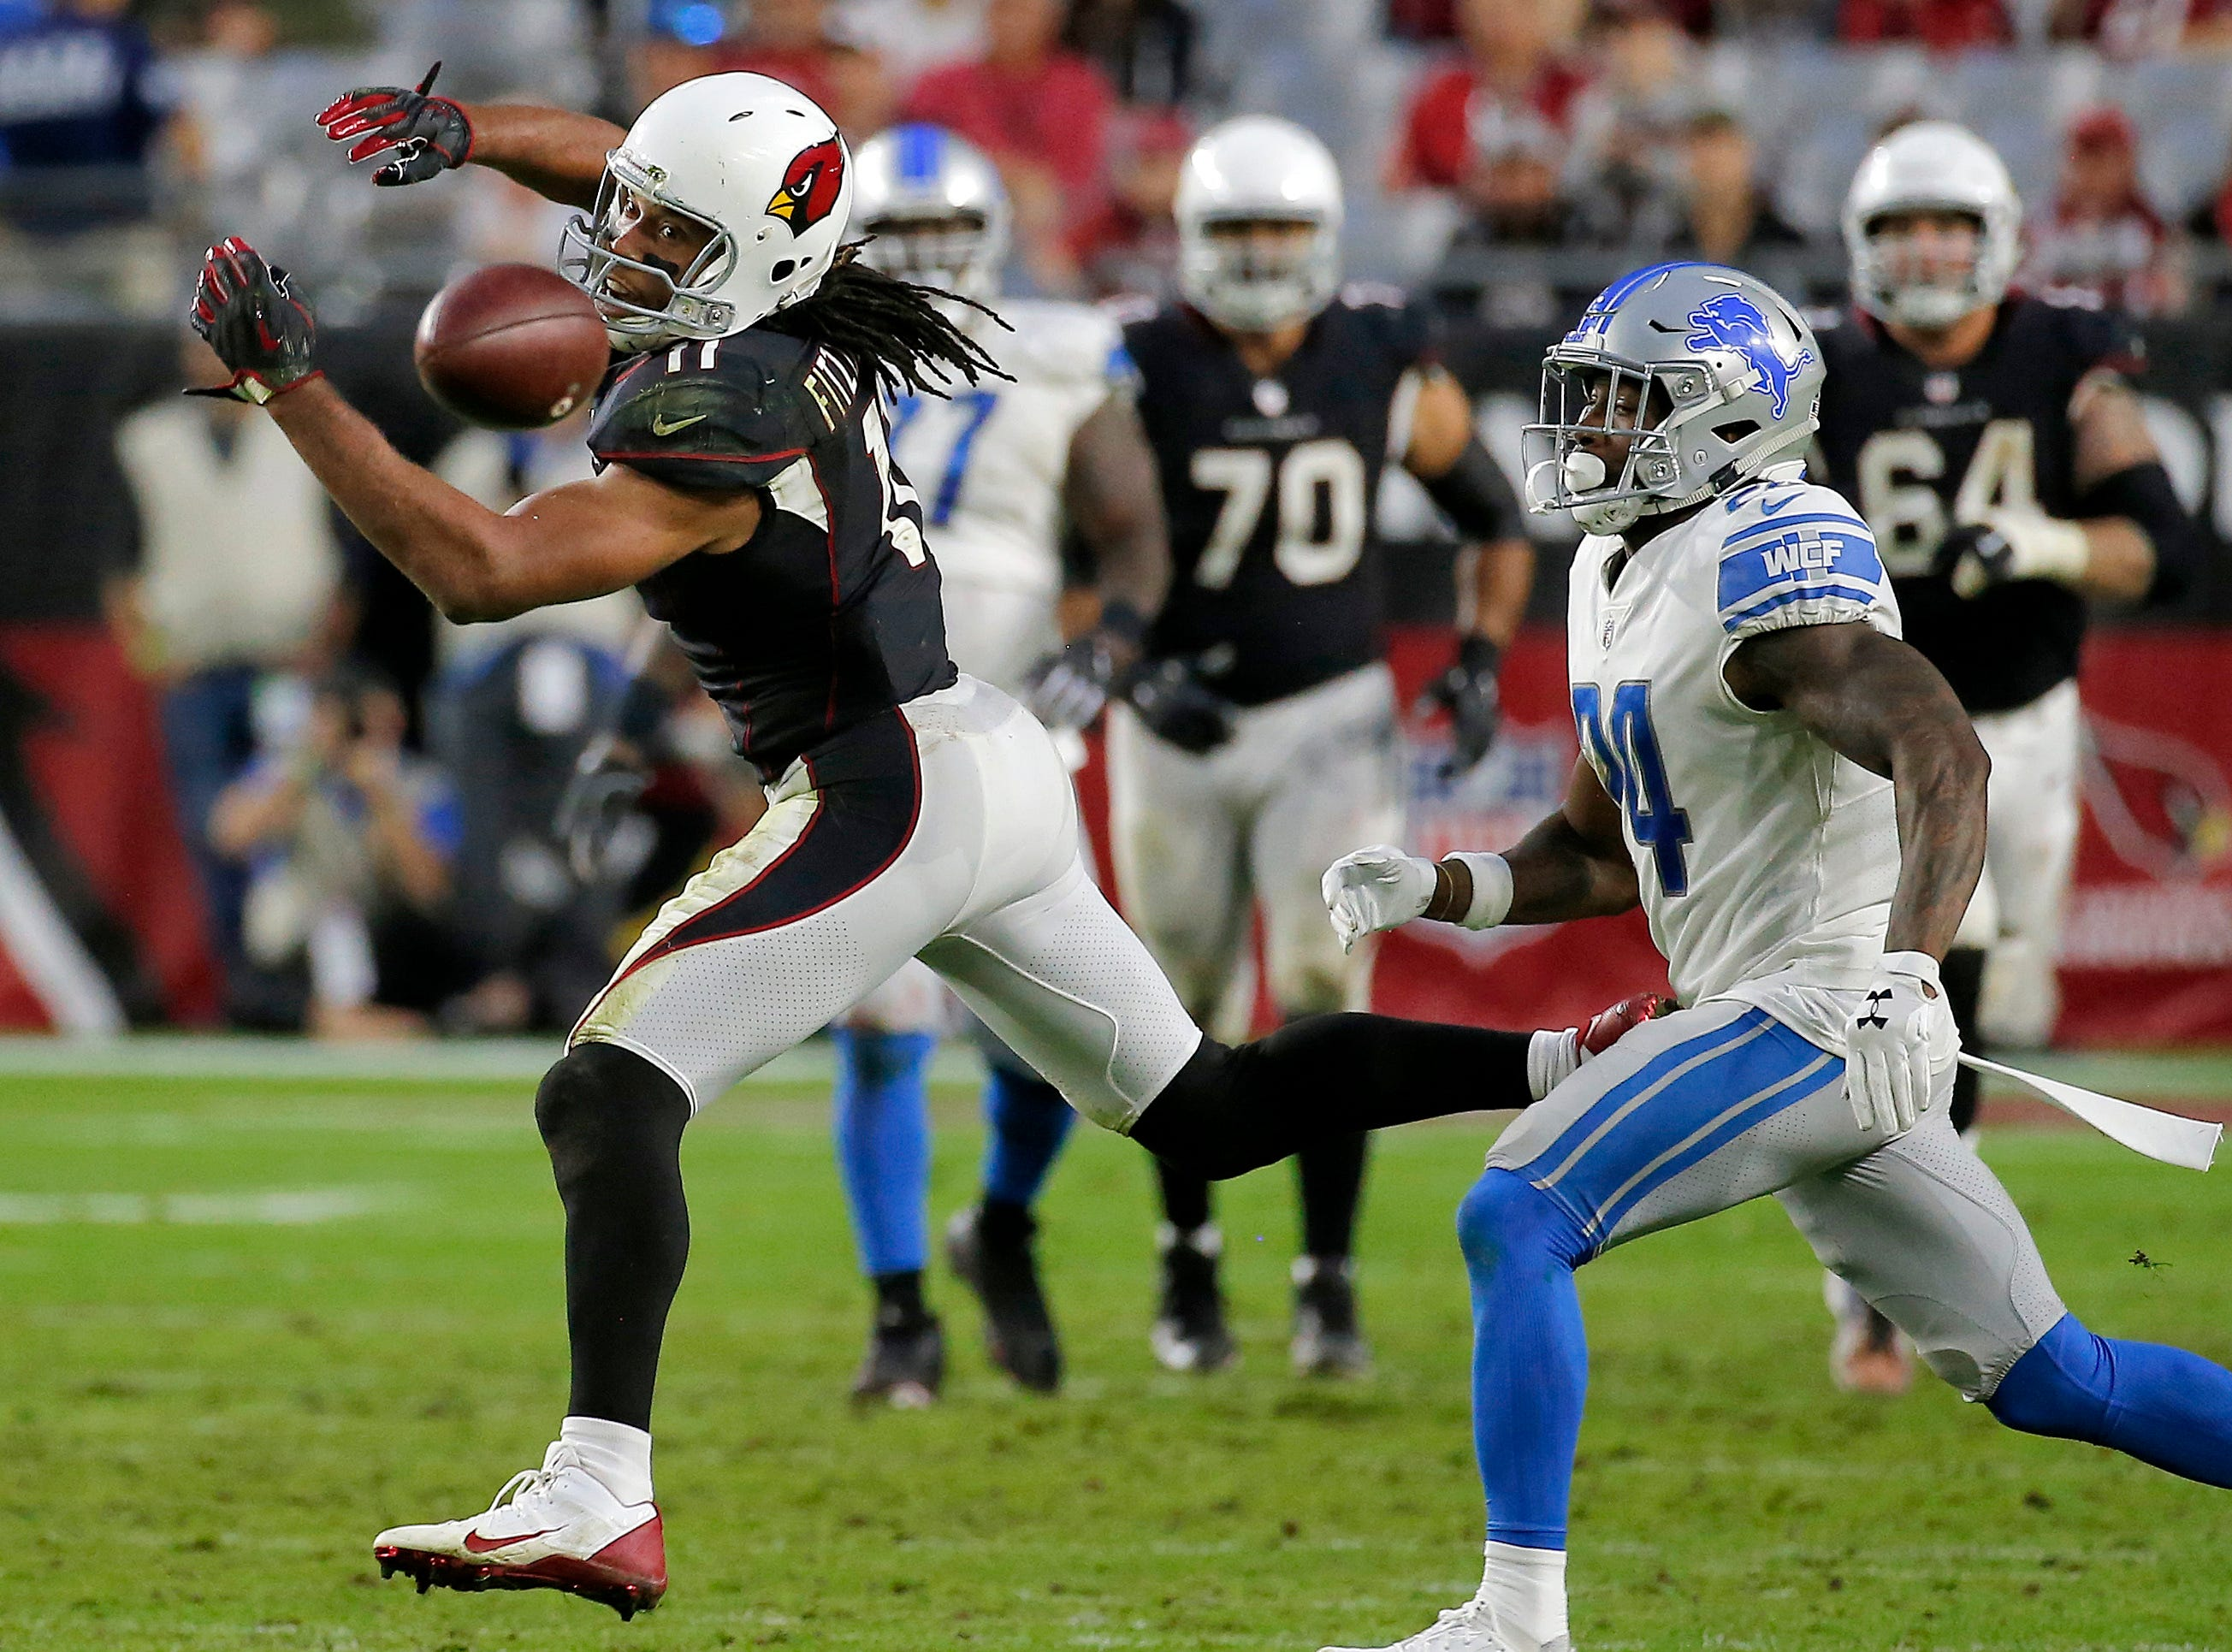 Arizona Cardinals wide receiver Larry Fitzgerald (11) can't make the catch against the Detroit Lions during the second half.